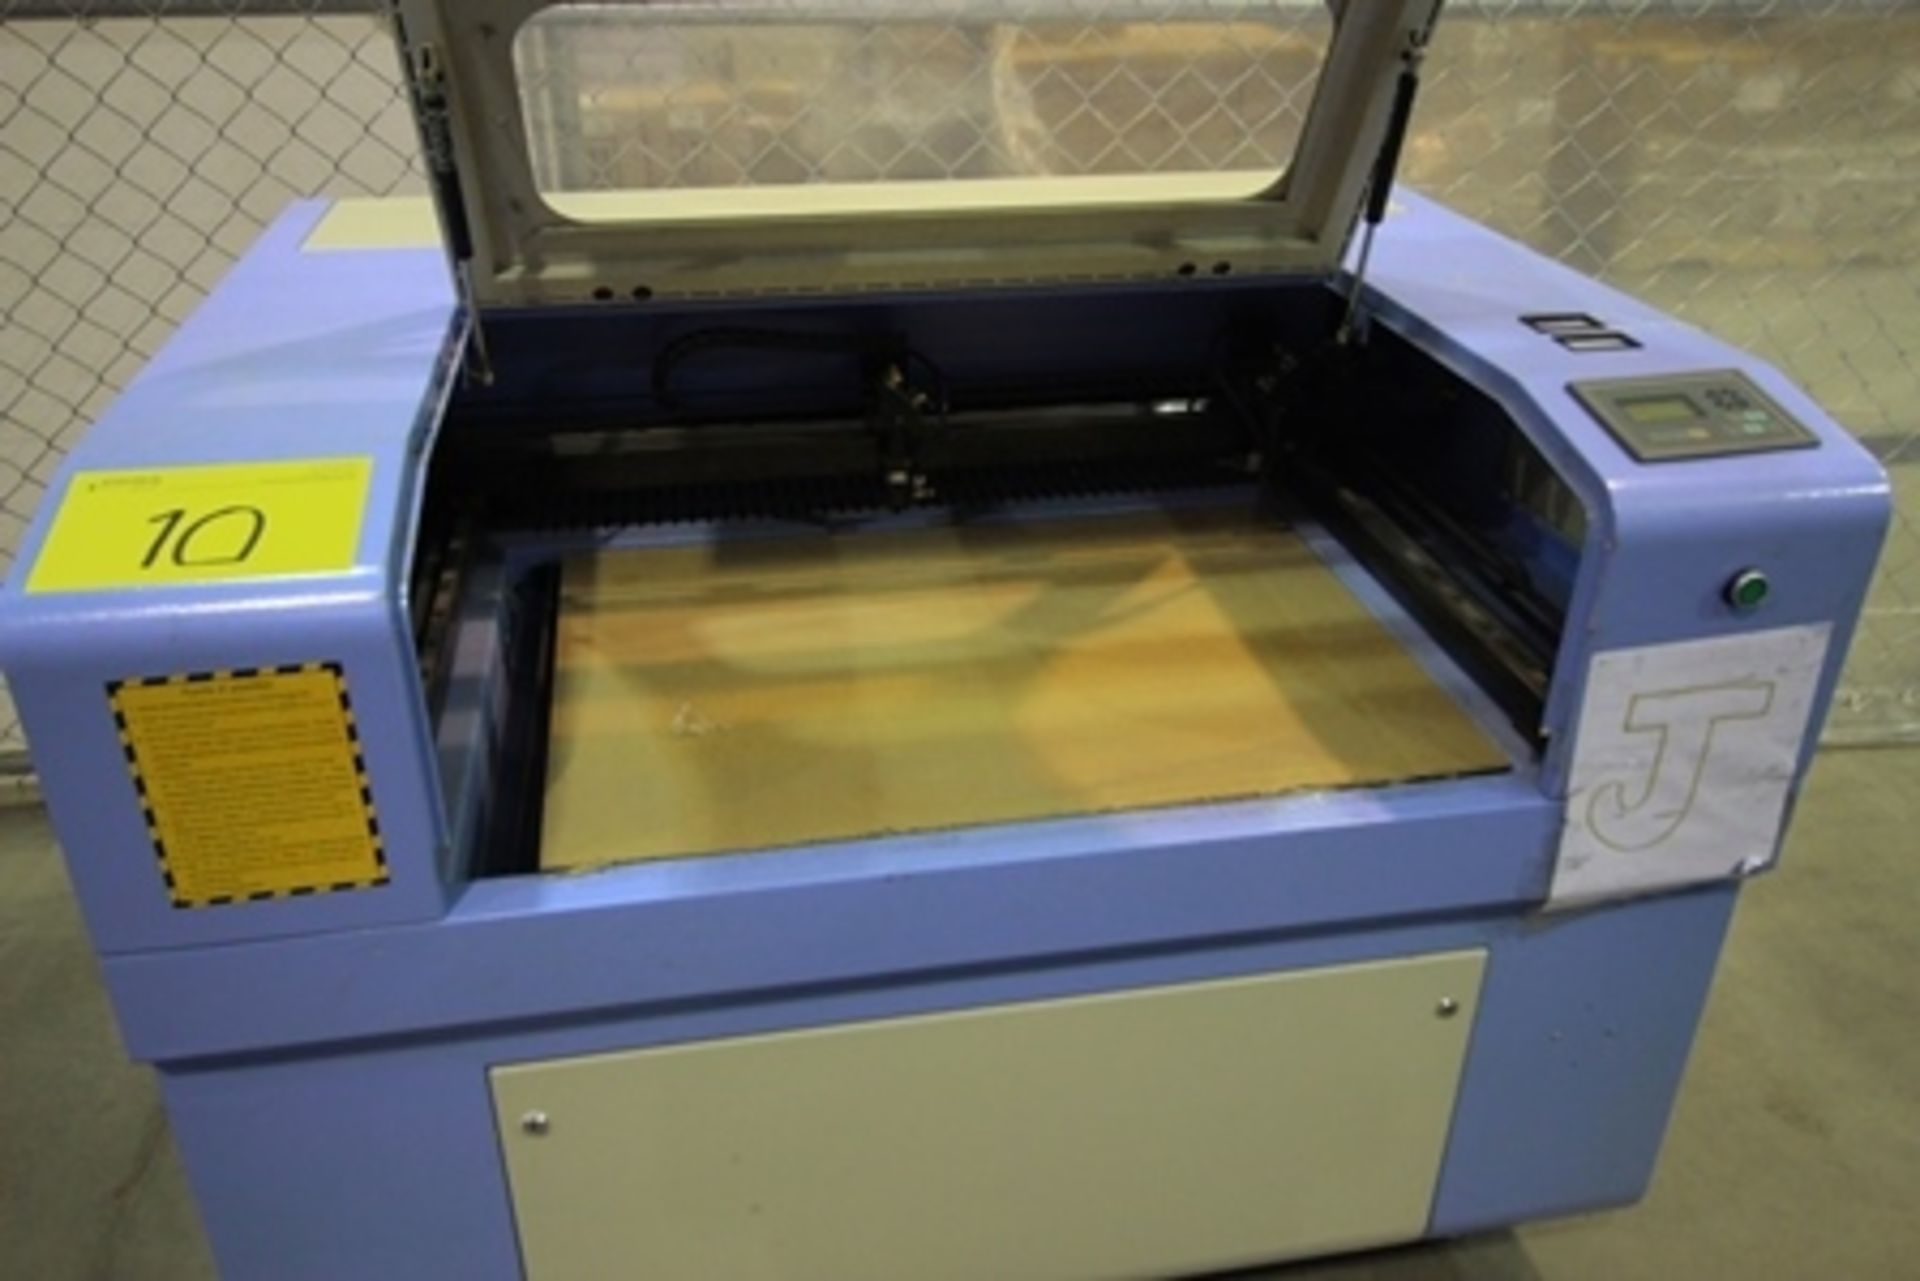 Lot 10 - 2017 Phillican CO2 laser engraver and cutting machine, model 6090.